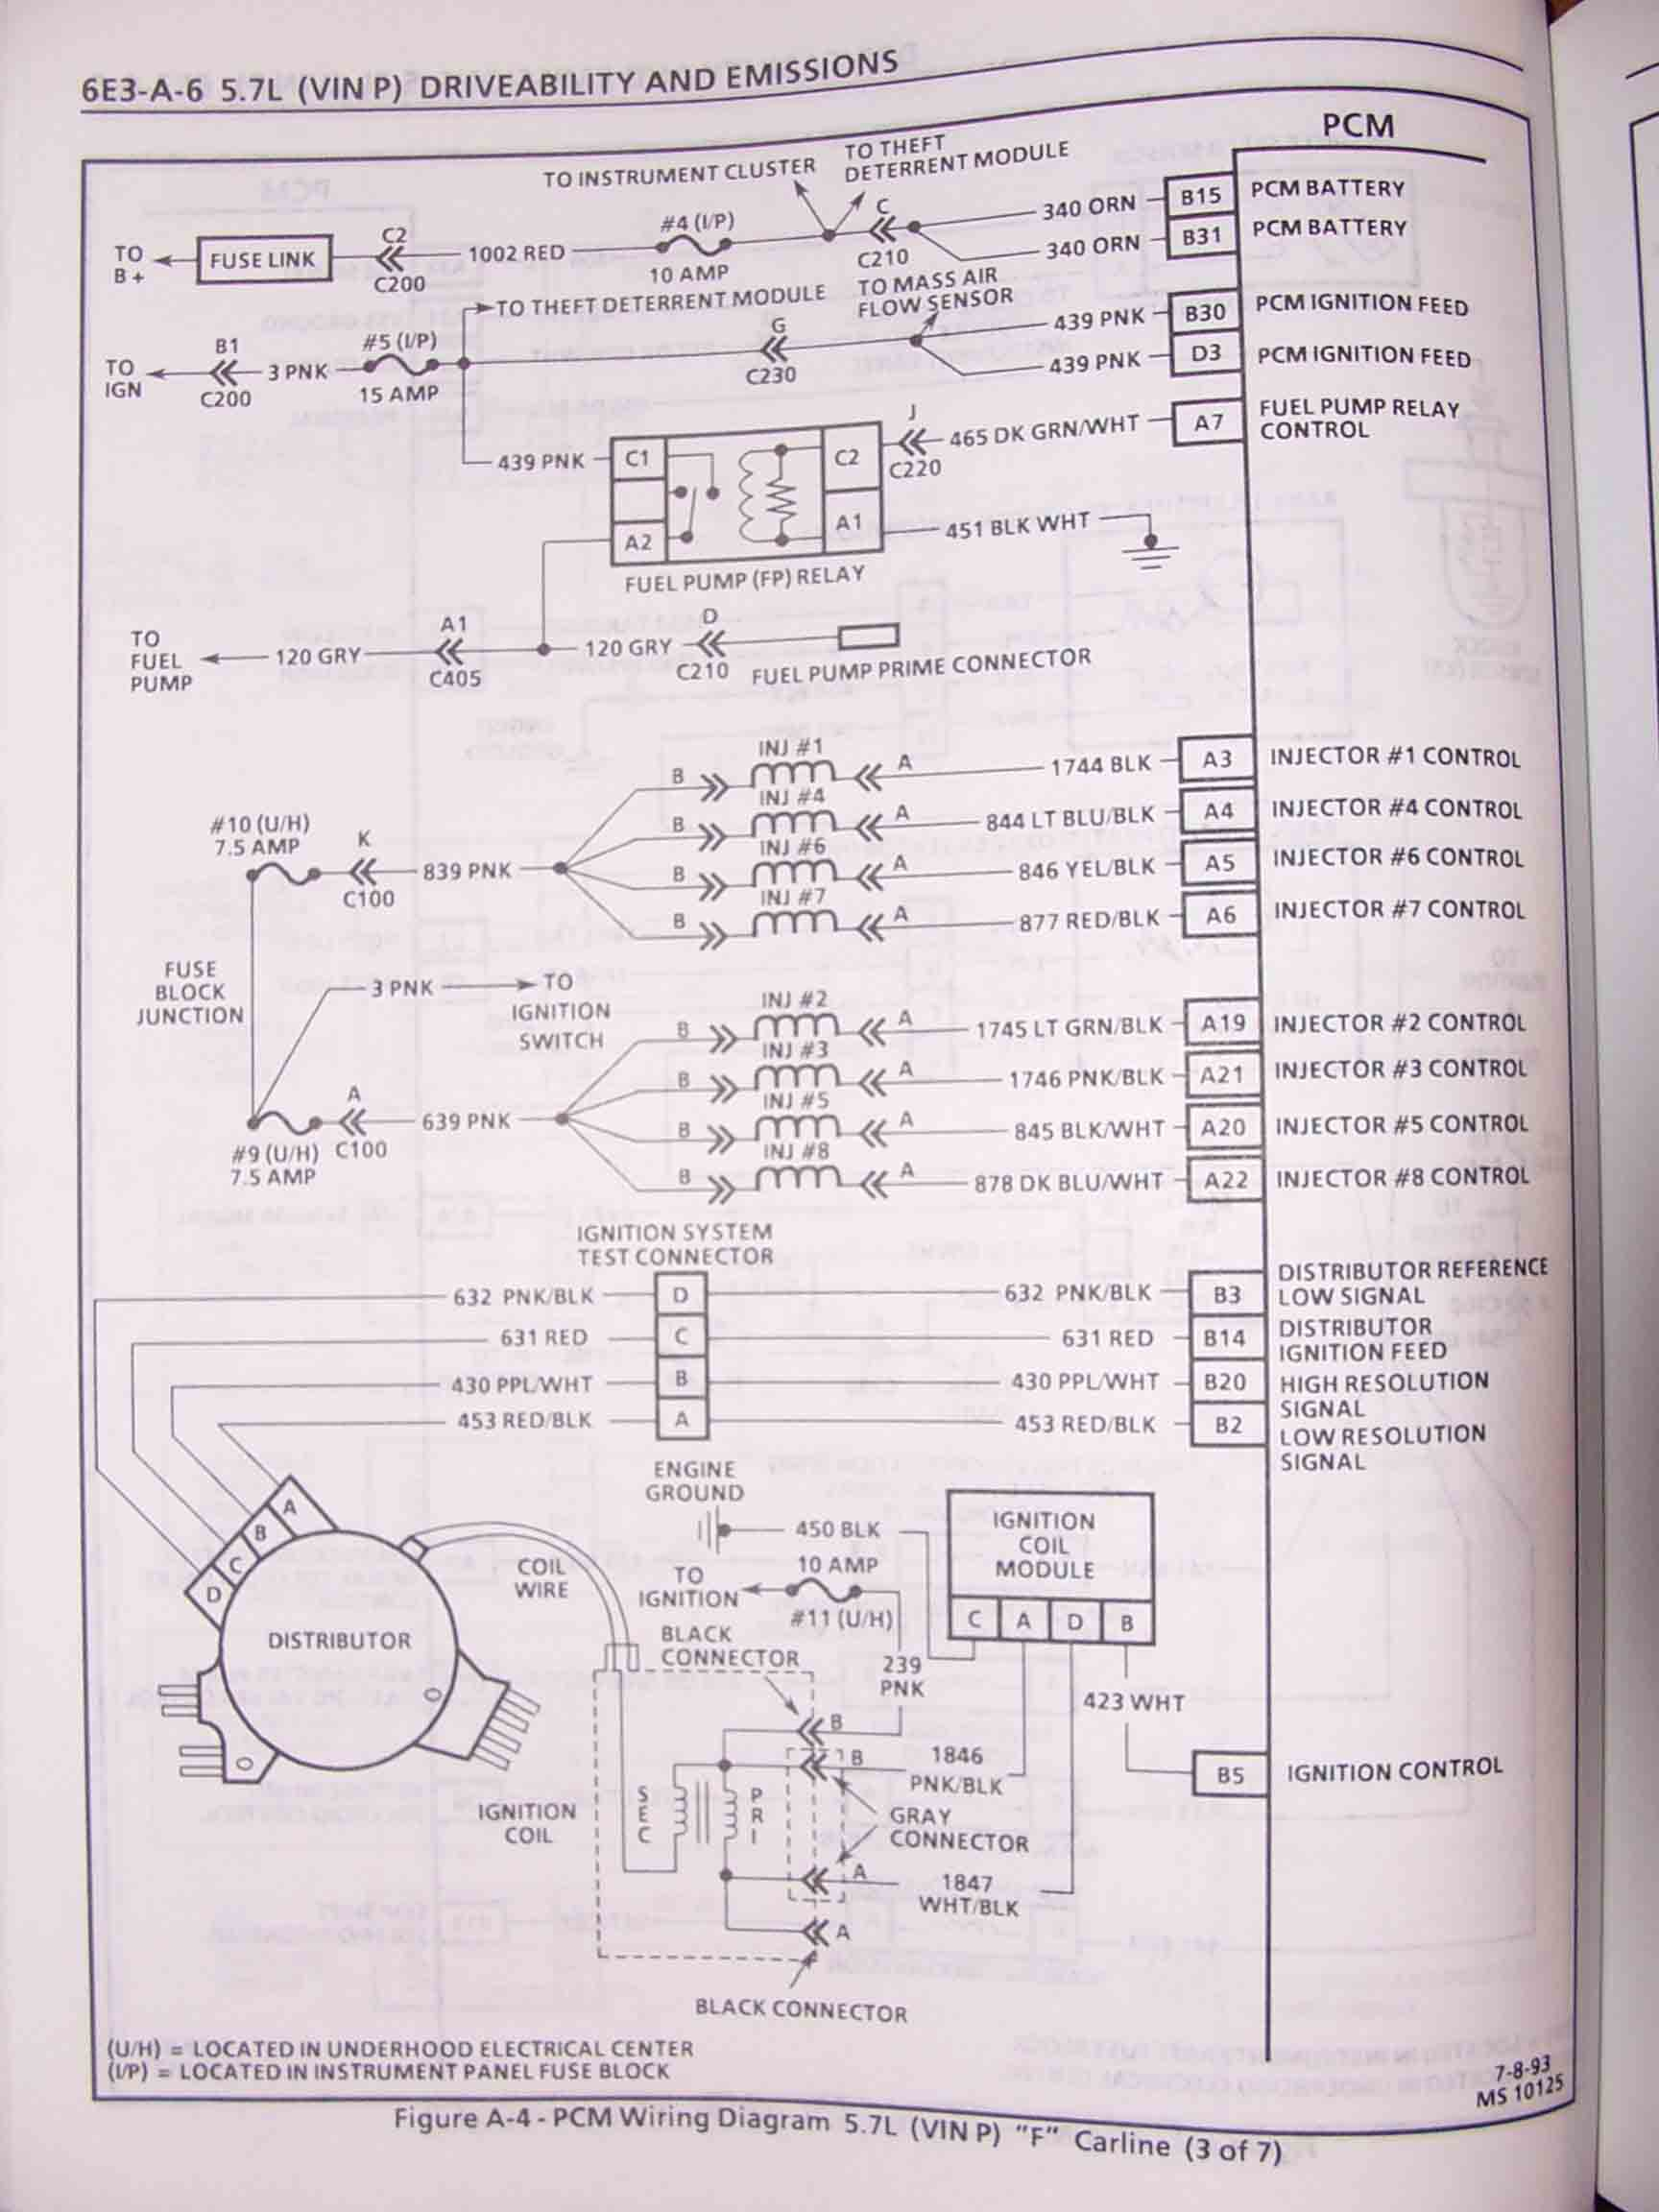 95 Camaro Lt1 Wire Harness Guide And Troubleshooting Of Wiring Z28 Fuse Box 1995 Getting Ready With Diagram U2022 Rh Locksjoker Com Engine